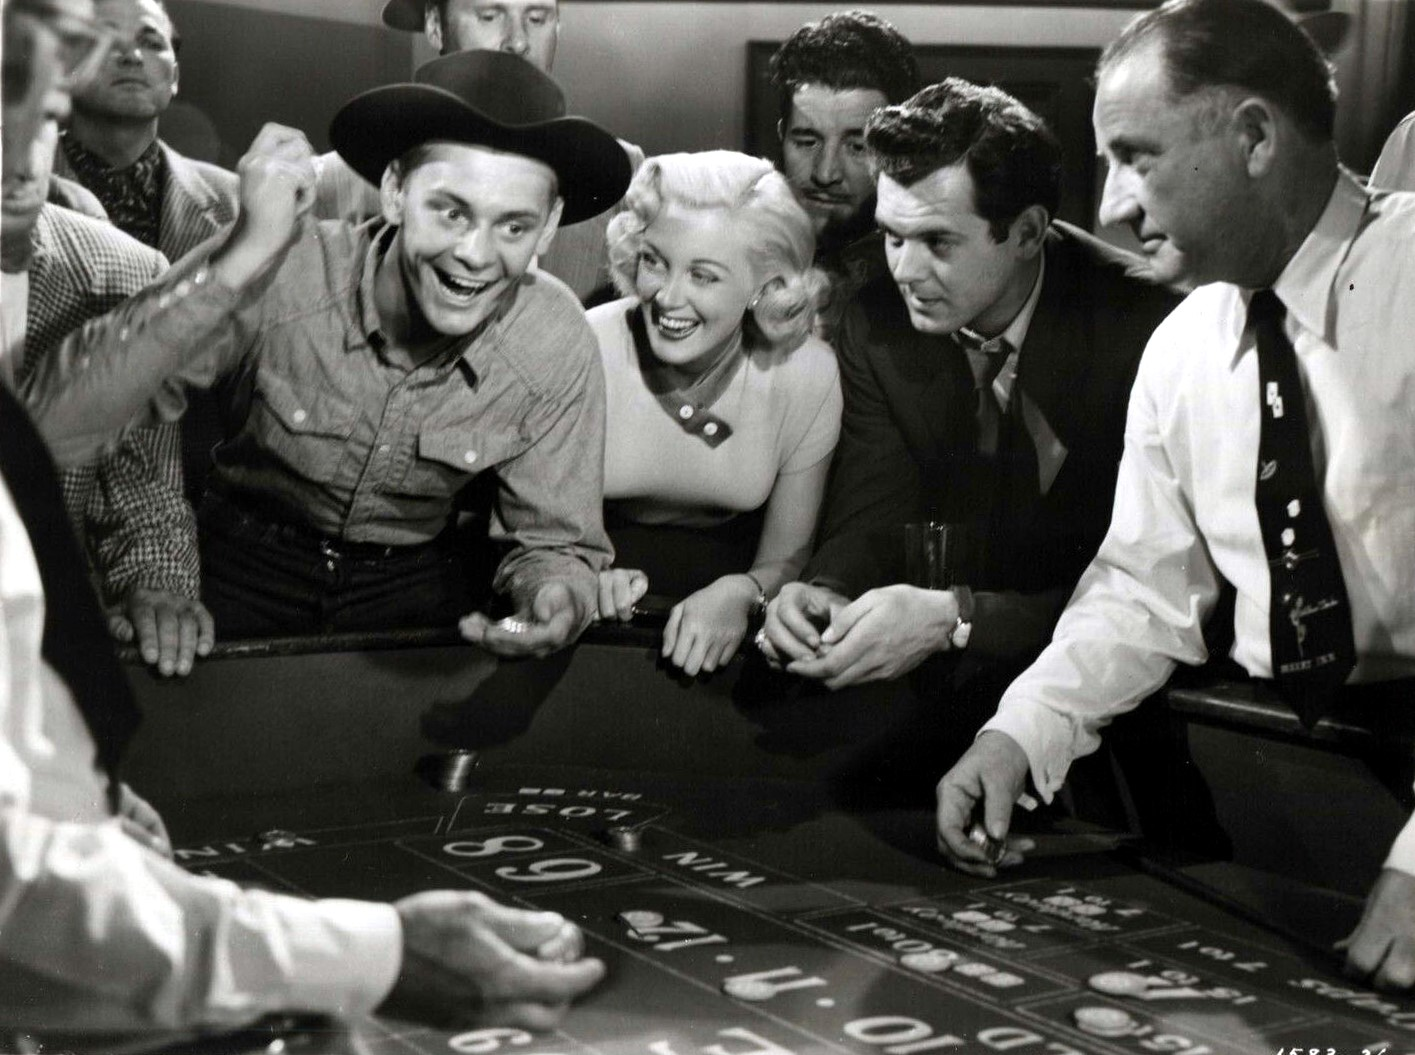 Jan Sterling, Carleton Carpenter, and Forrest Lederer in Sky Full of Moon (1952)